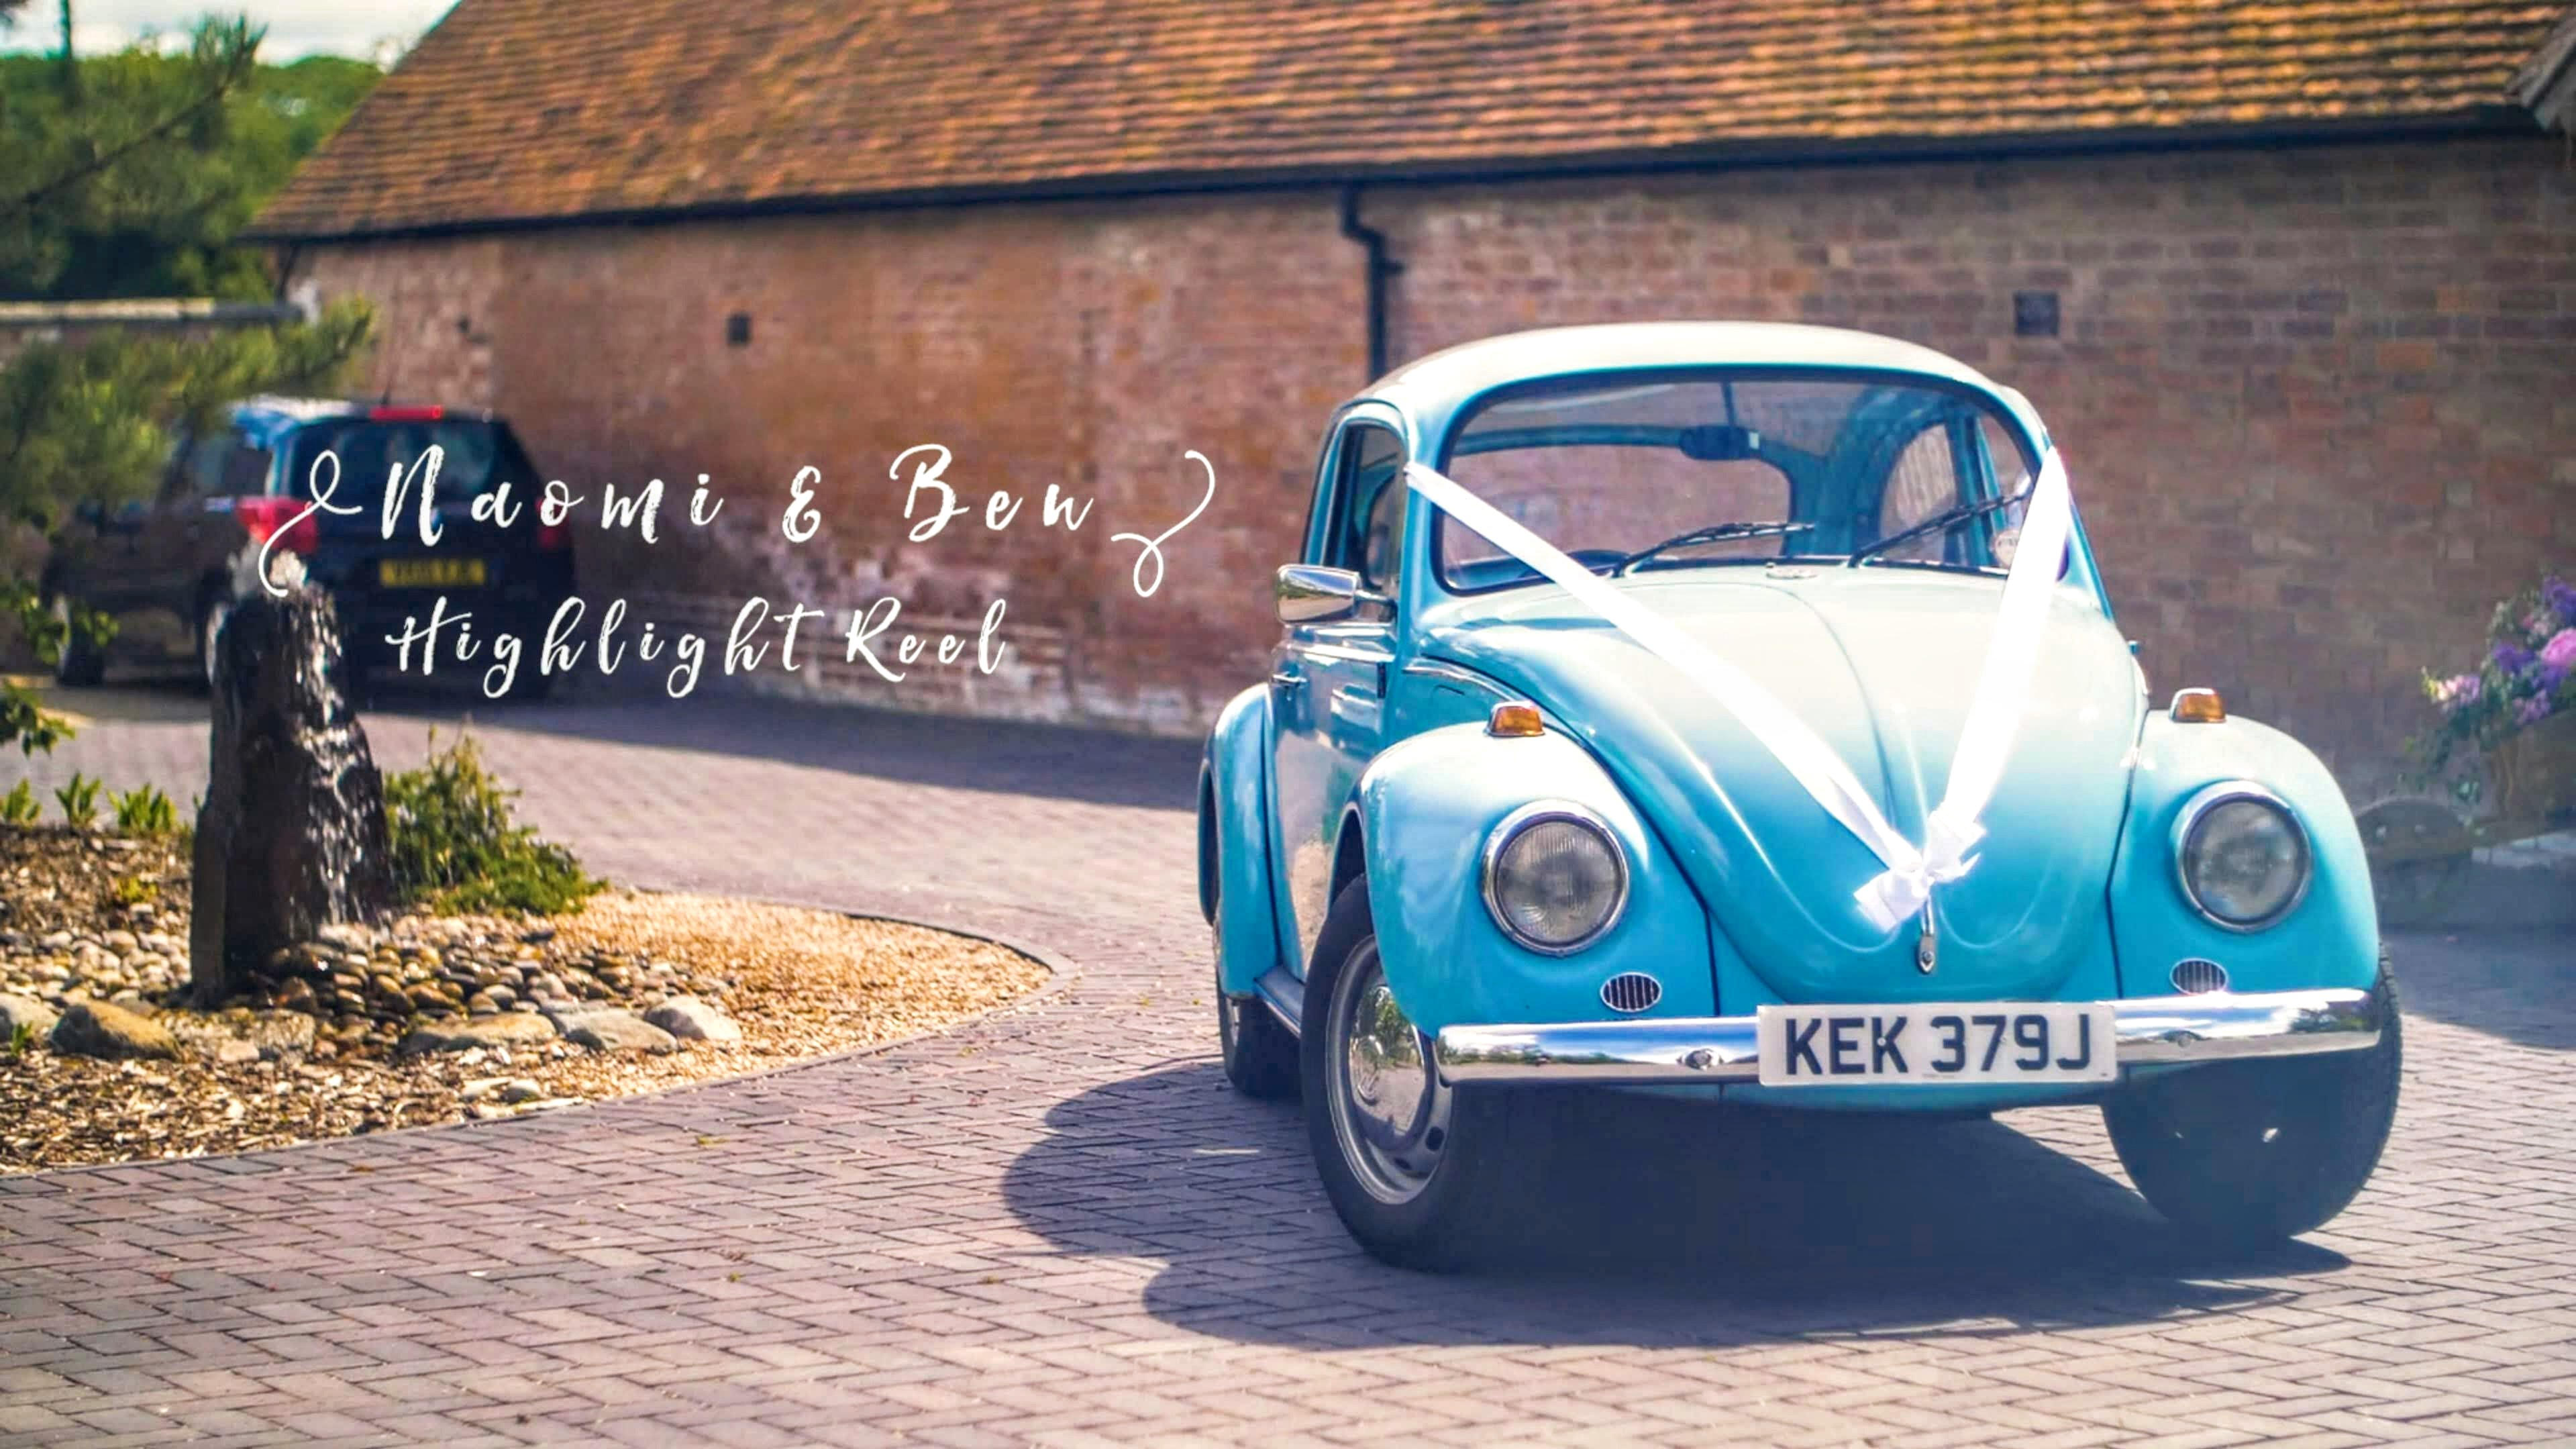 Naomi + Ben | Warwick, United Kingdom | Swallow Nest Barn